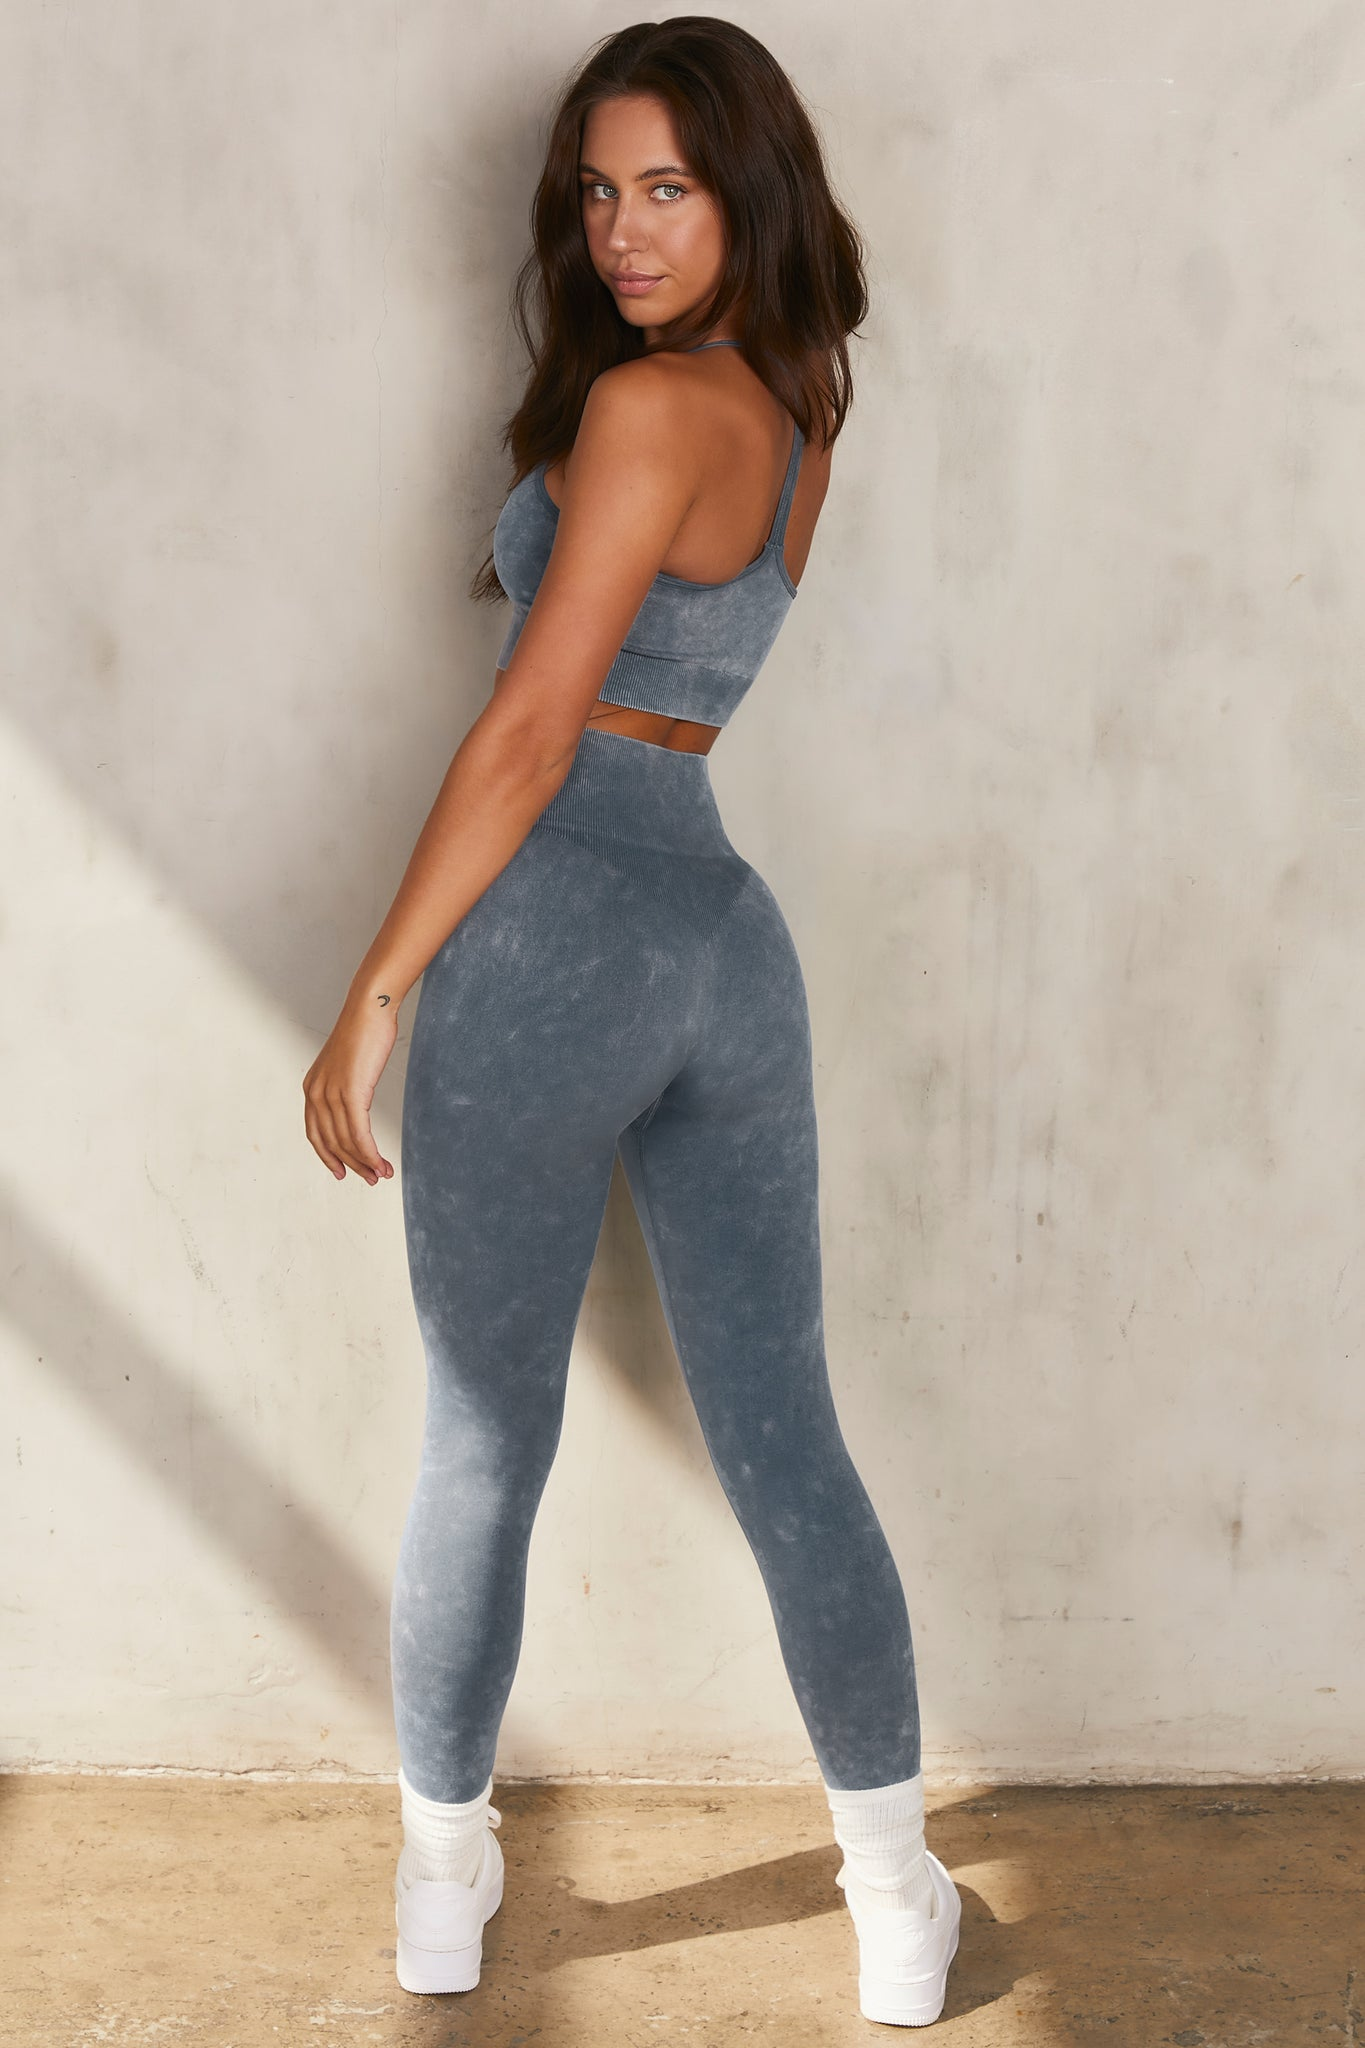 Reflex - Leggings in Charcoal